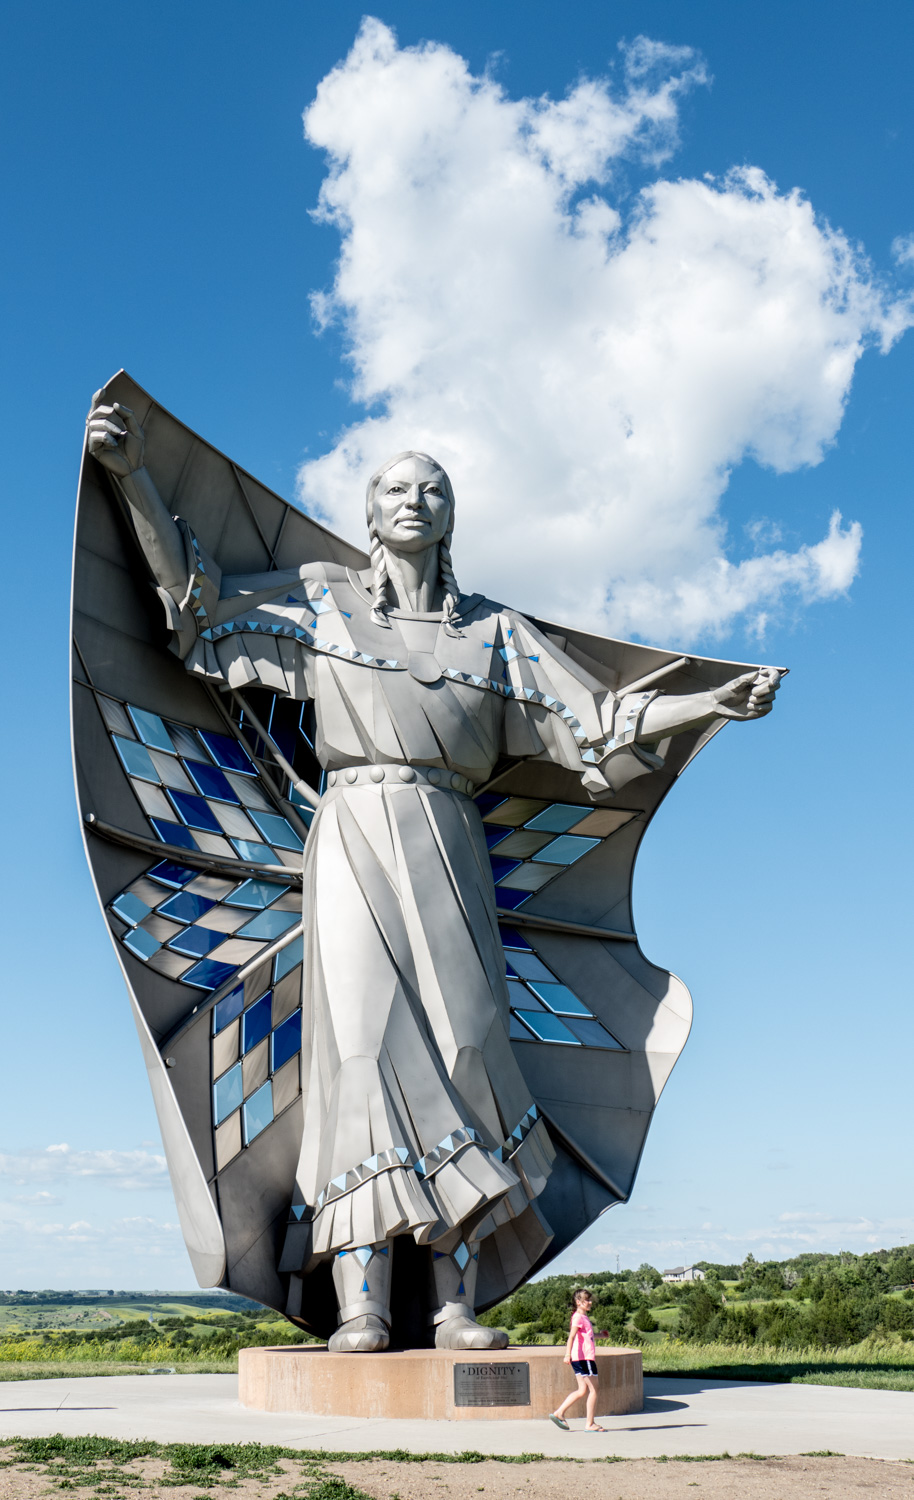 The Destiny statue that overlooks the Missouri River at the Lewis and Clark Interpretive Center in Chamberlain, SD